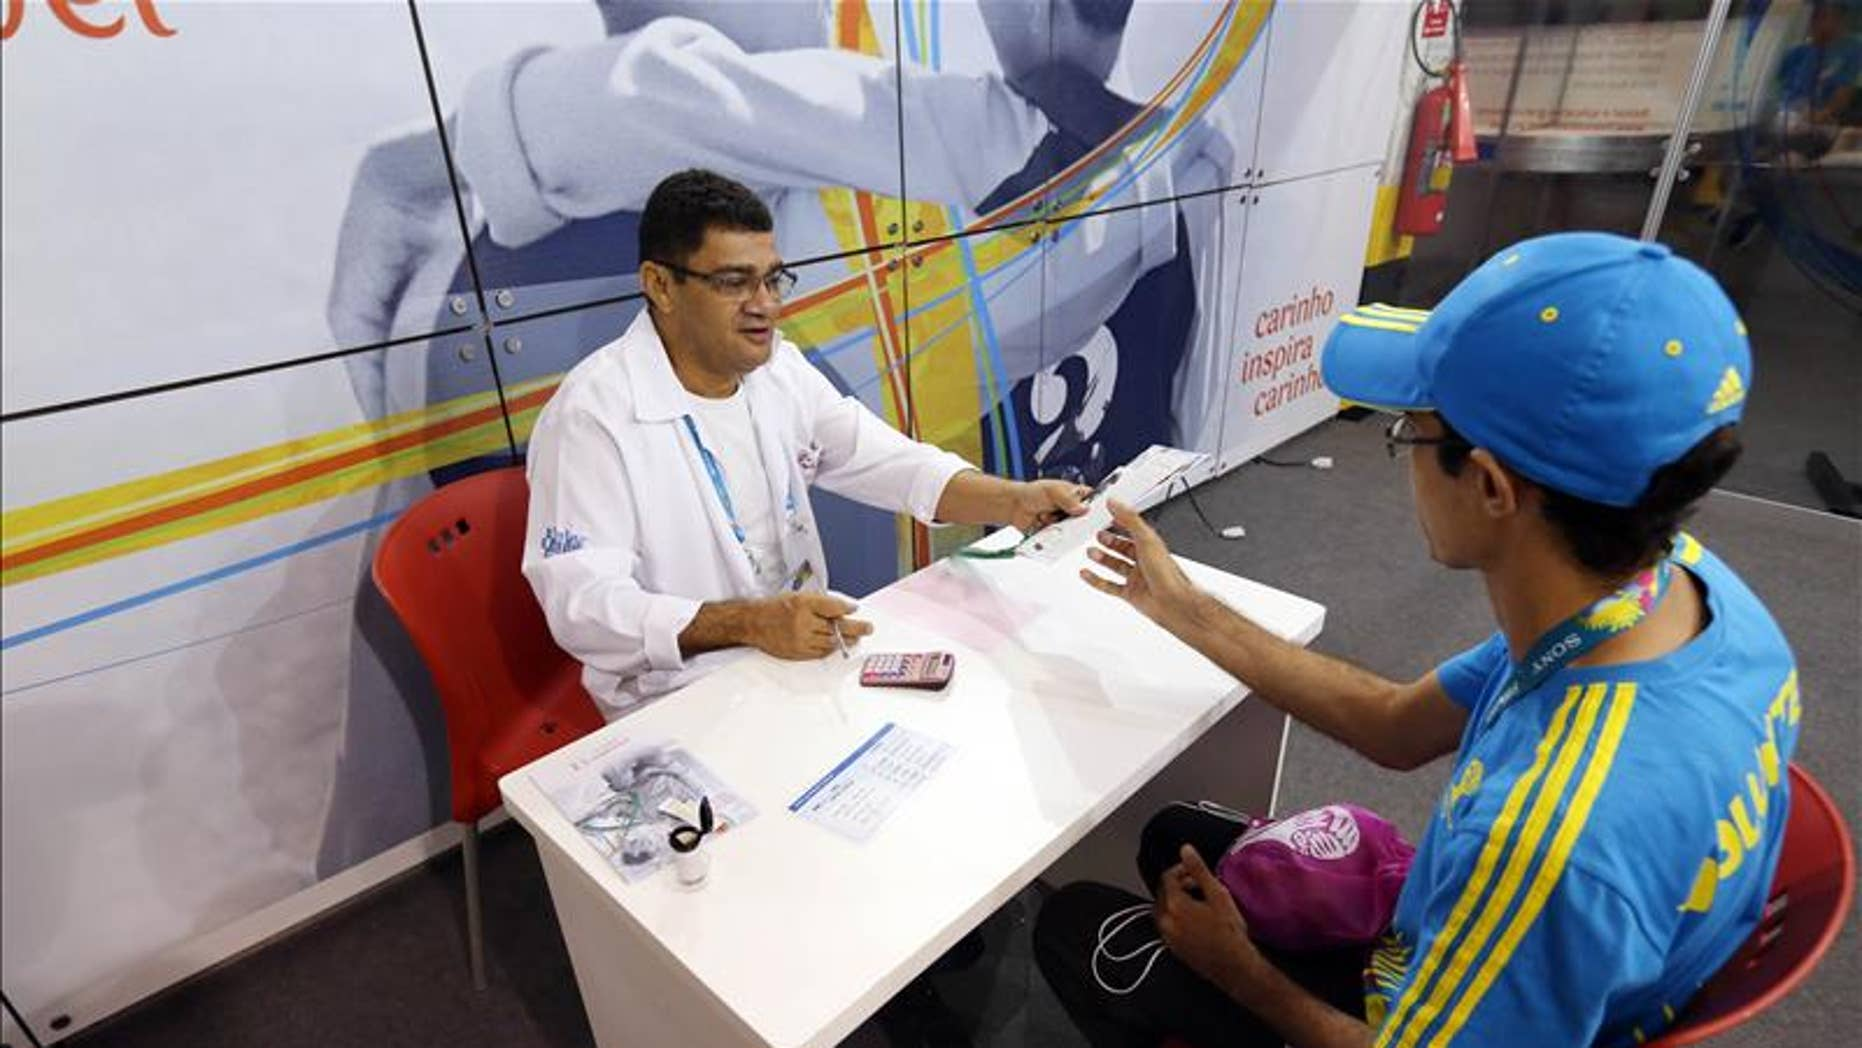 A health screening in progress at one of the Volunteer Centers at the World Cup in Brazil. (FIFA via Action Images)